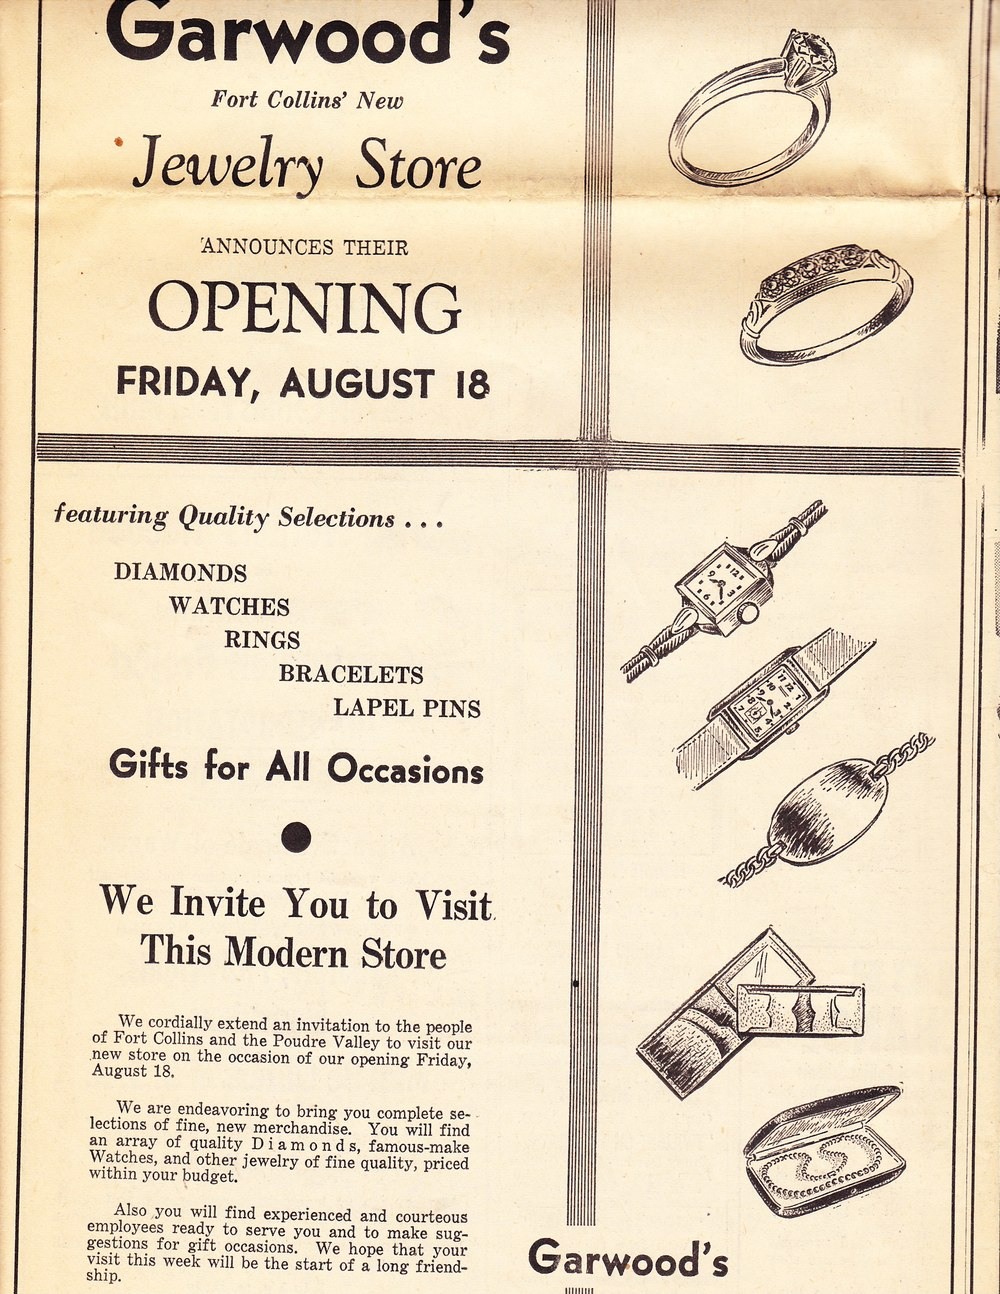 Original grand opening announcement in the Fort Collins Express-Courier on August 18, 1944.